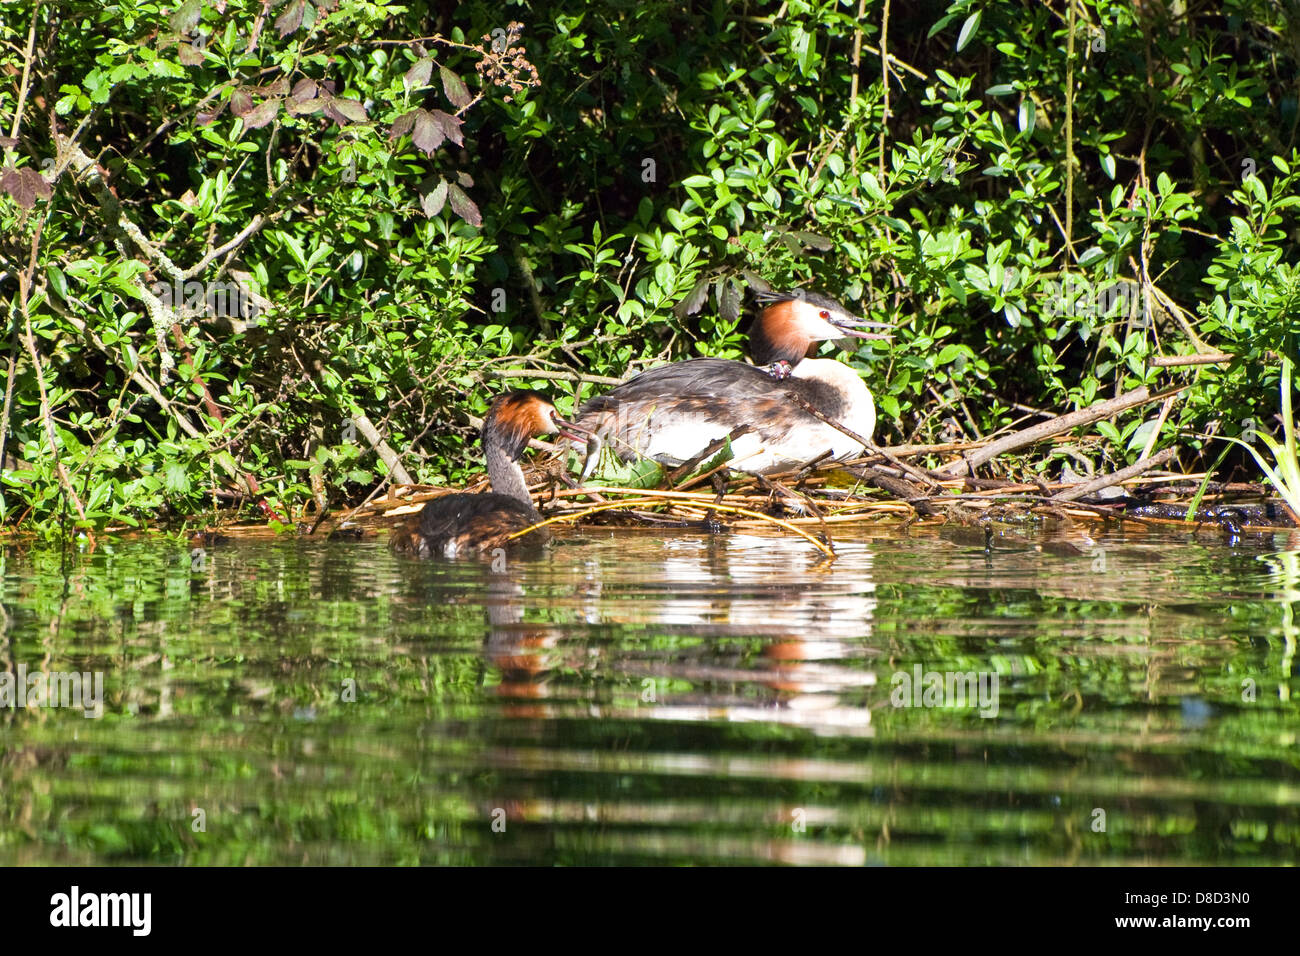 Pair of Great Crested Grebe - Stock Image